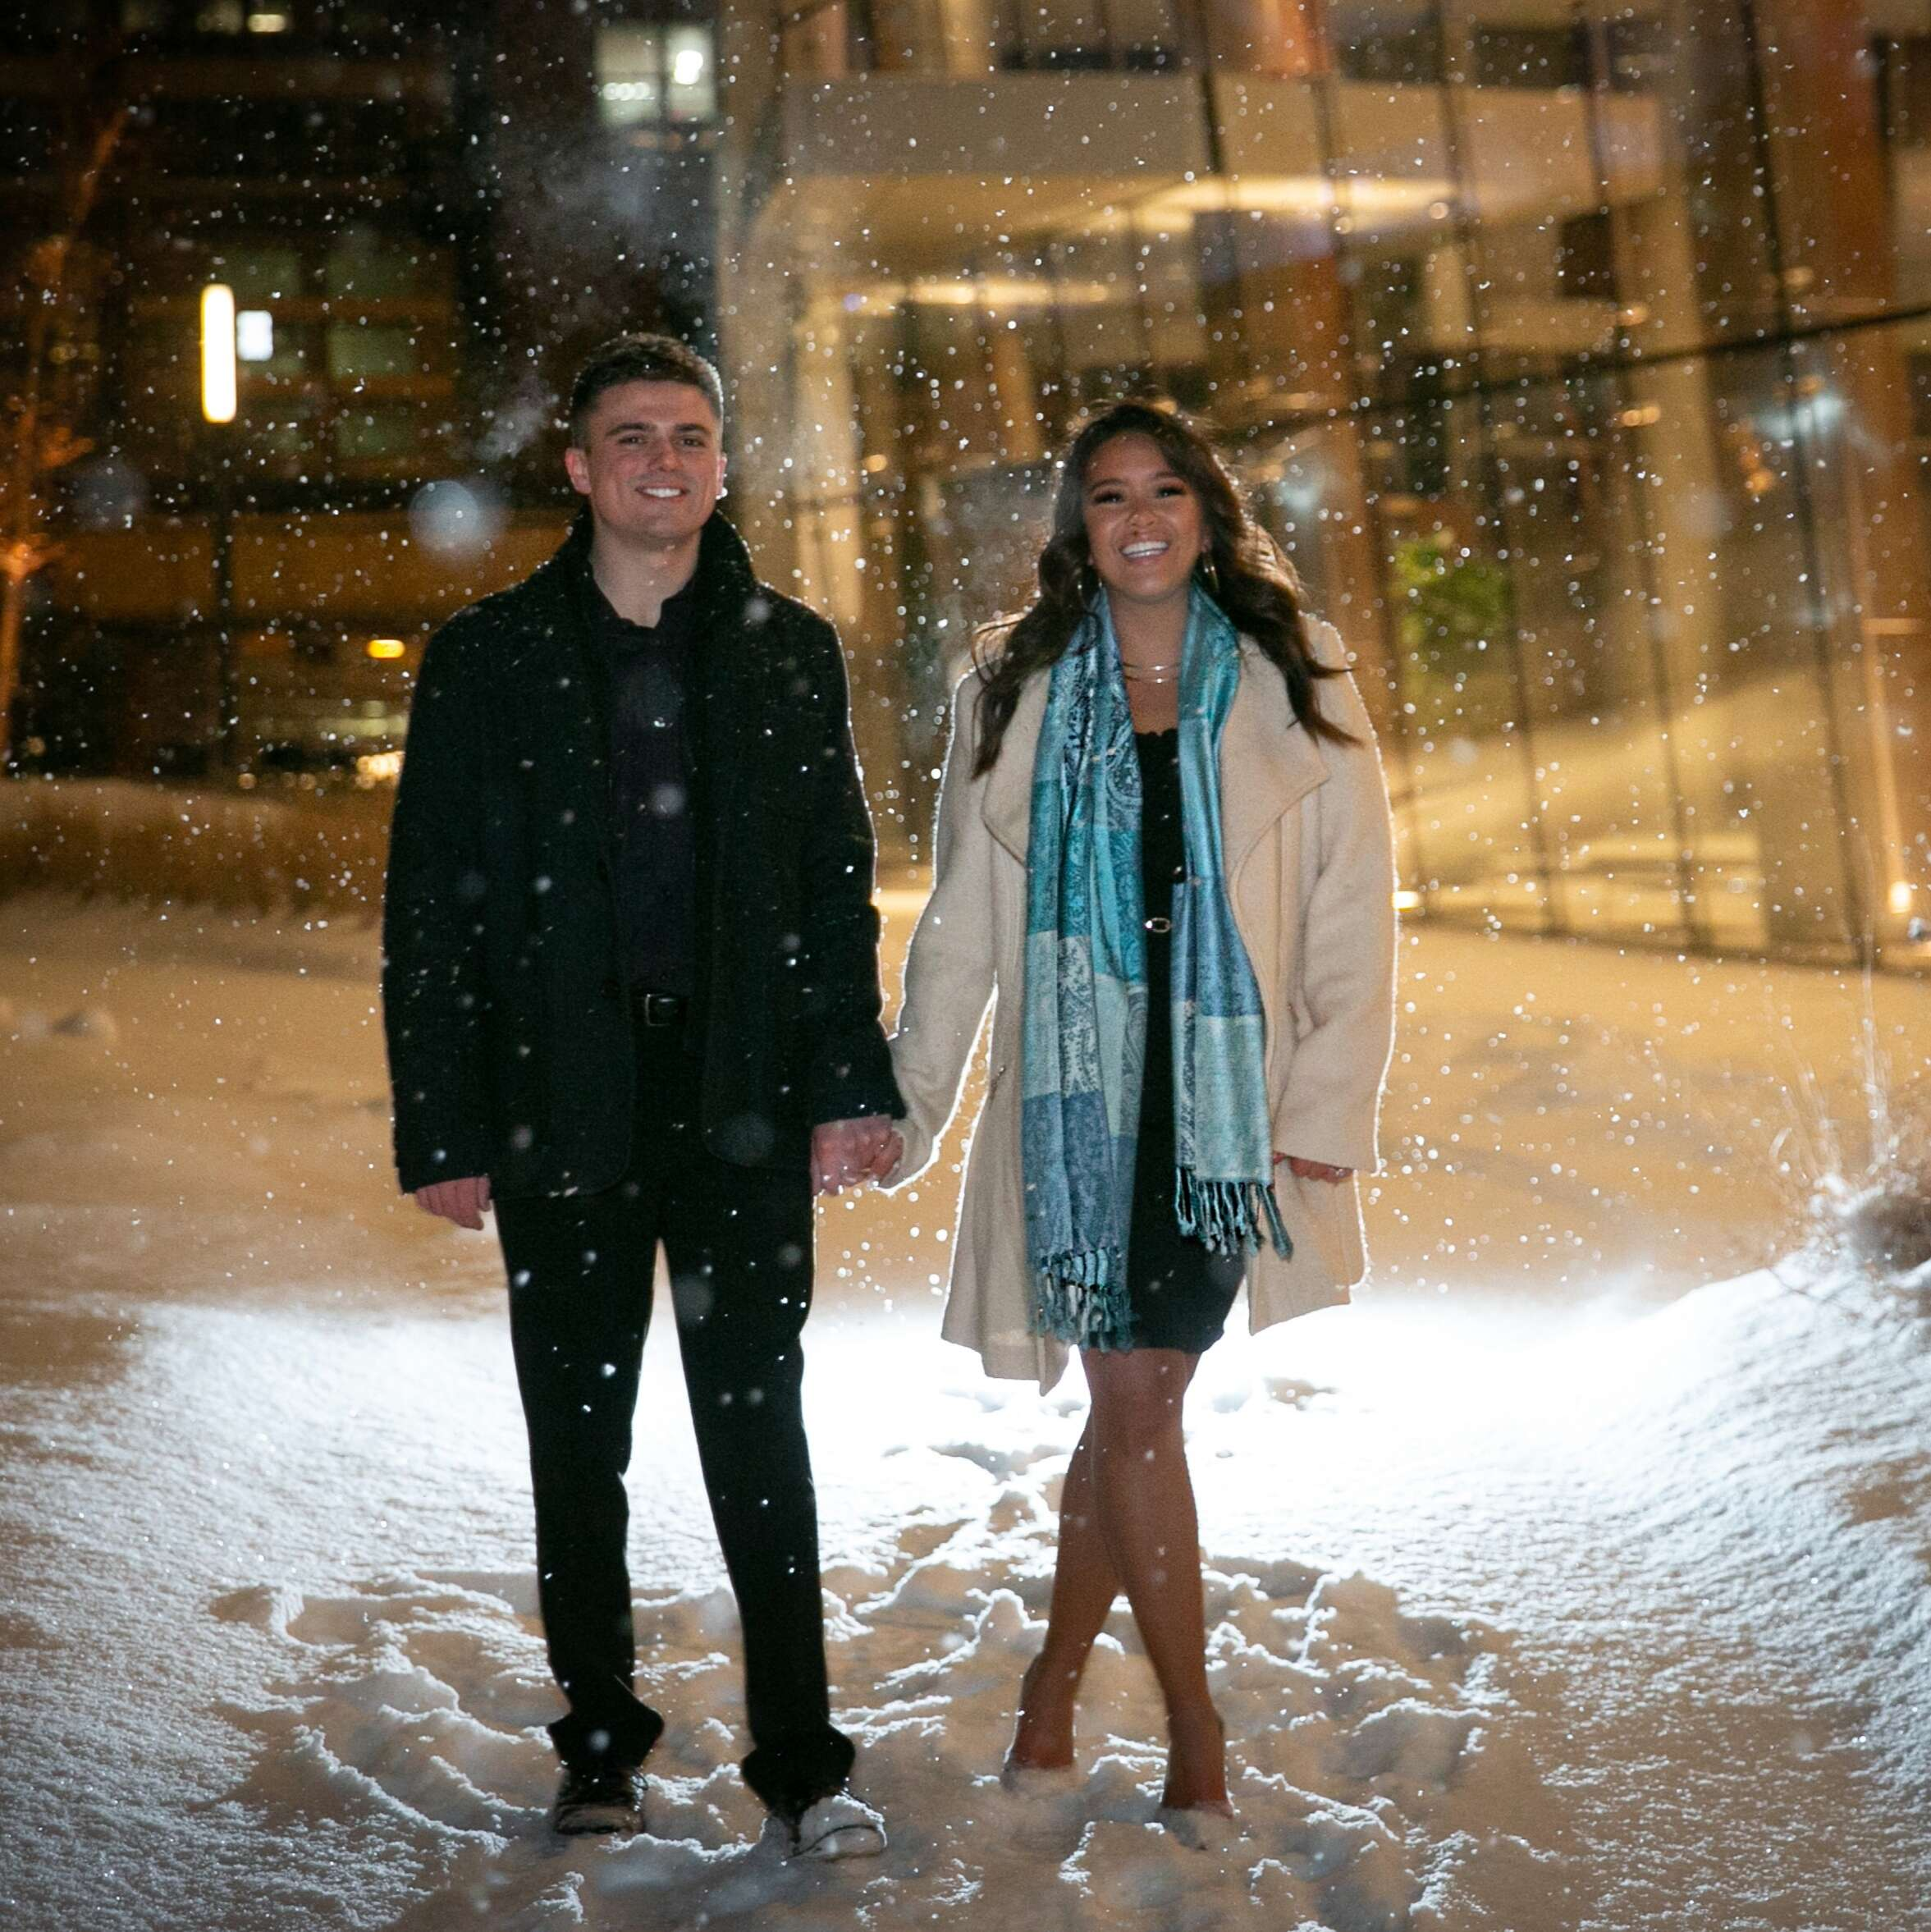 Jake and Alexis